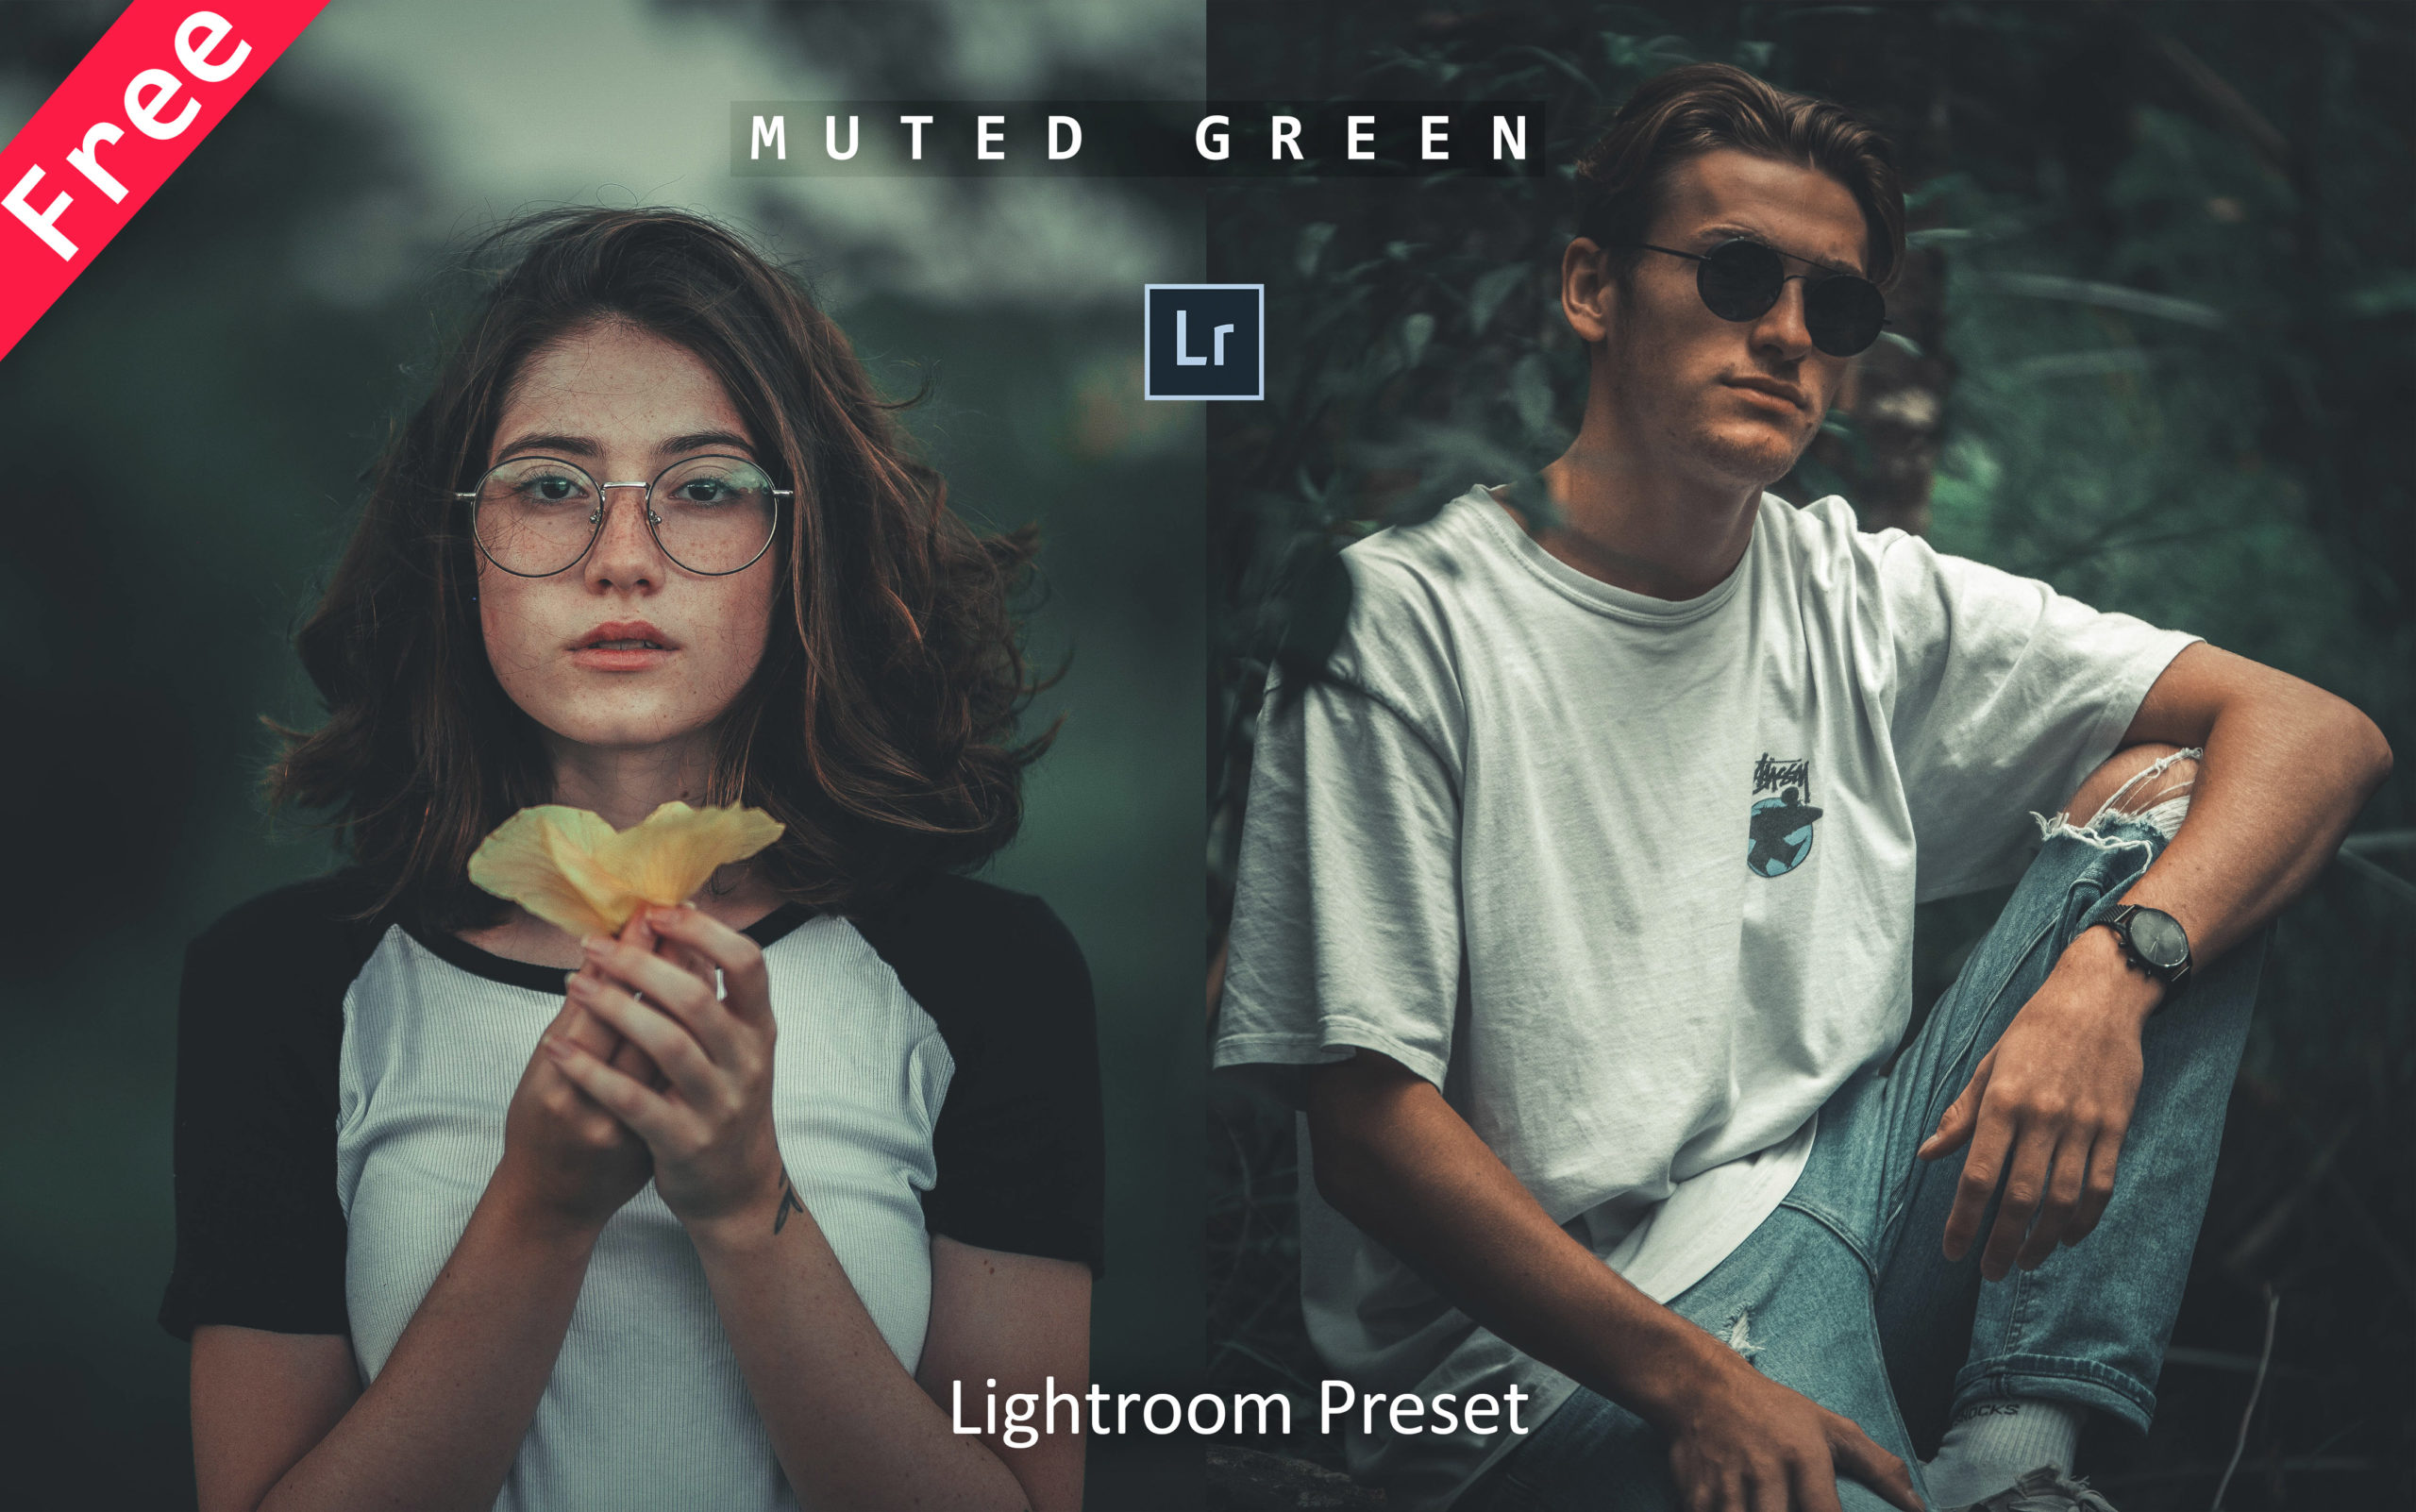 Download Muted Green Lightroom Preset for Free | How to Edit Photos Like Muted Green Tone in Lightroom